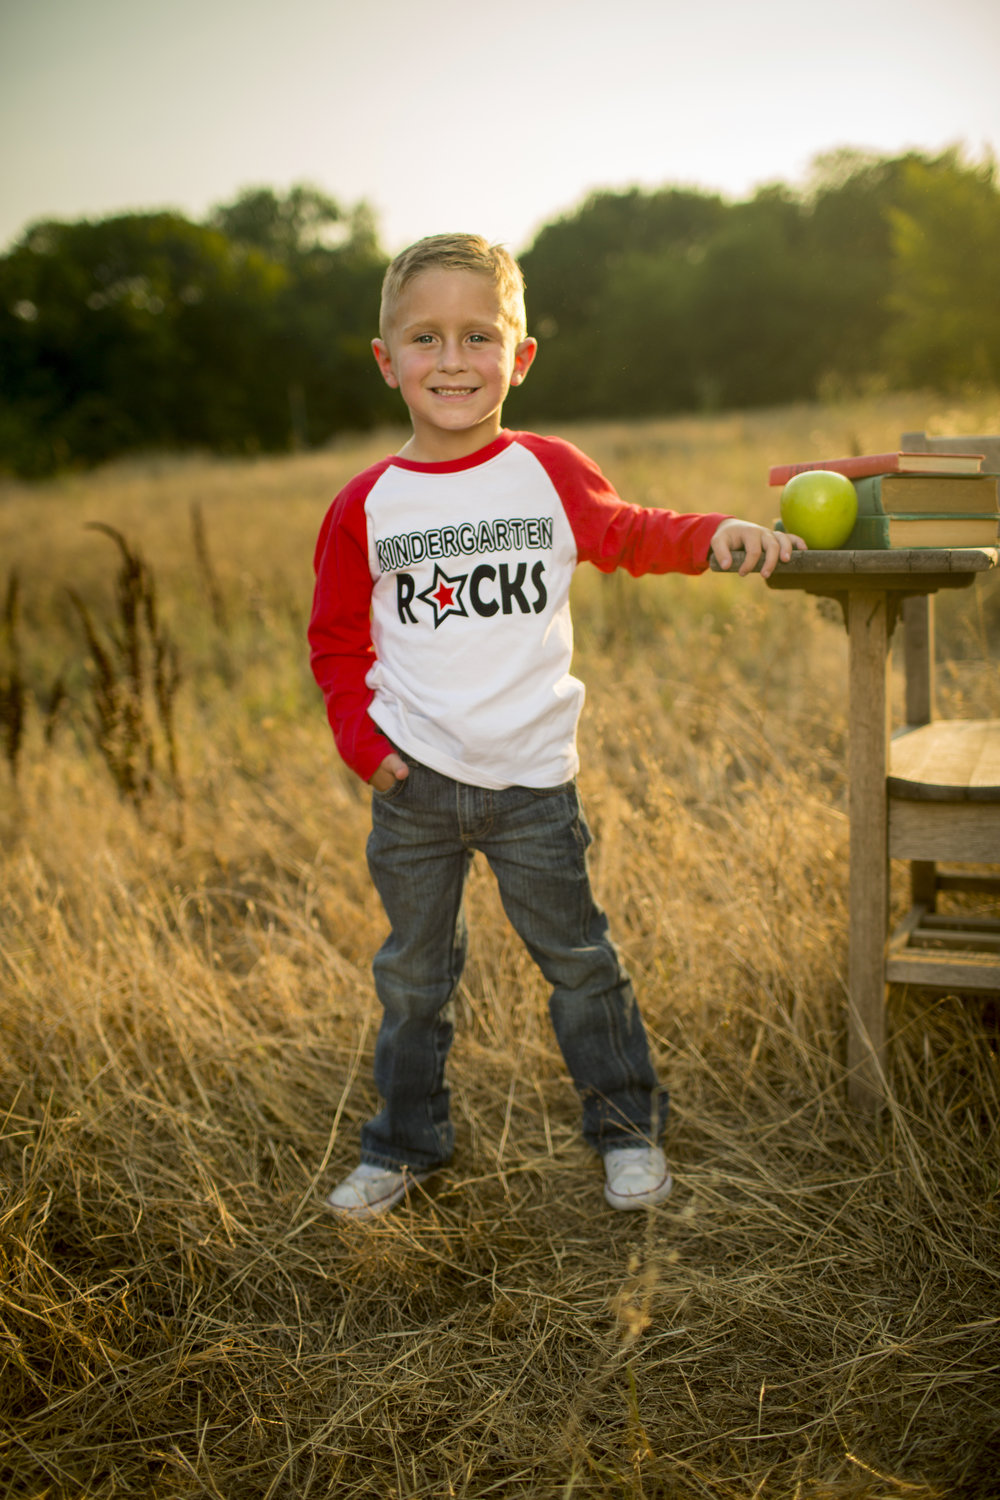 Back to School Mini Sessions | Keller, TX